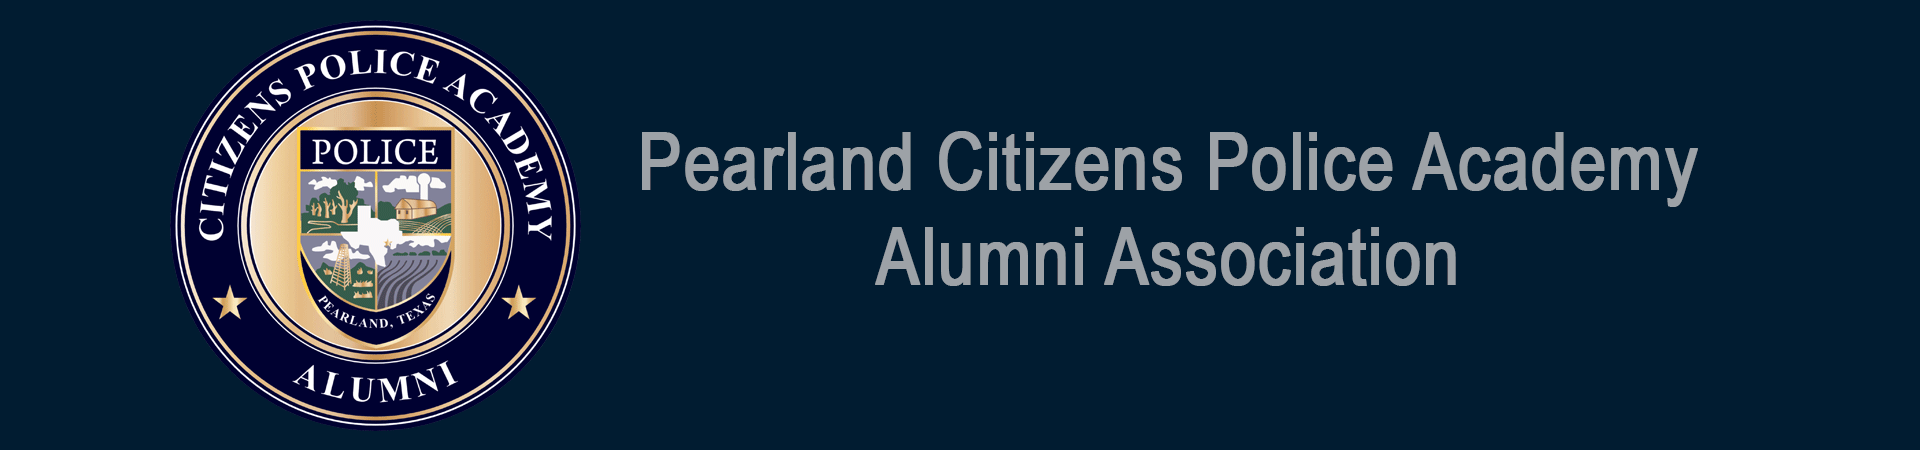 Pearland Citizens Police Academy Alumni Association